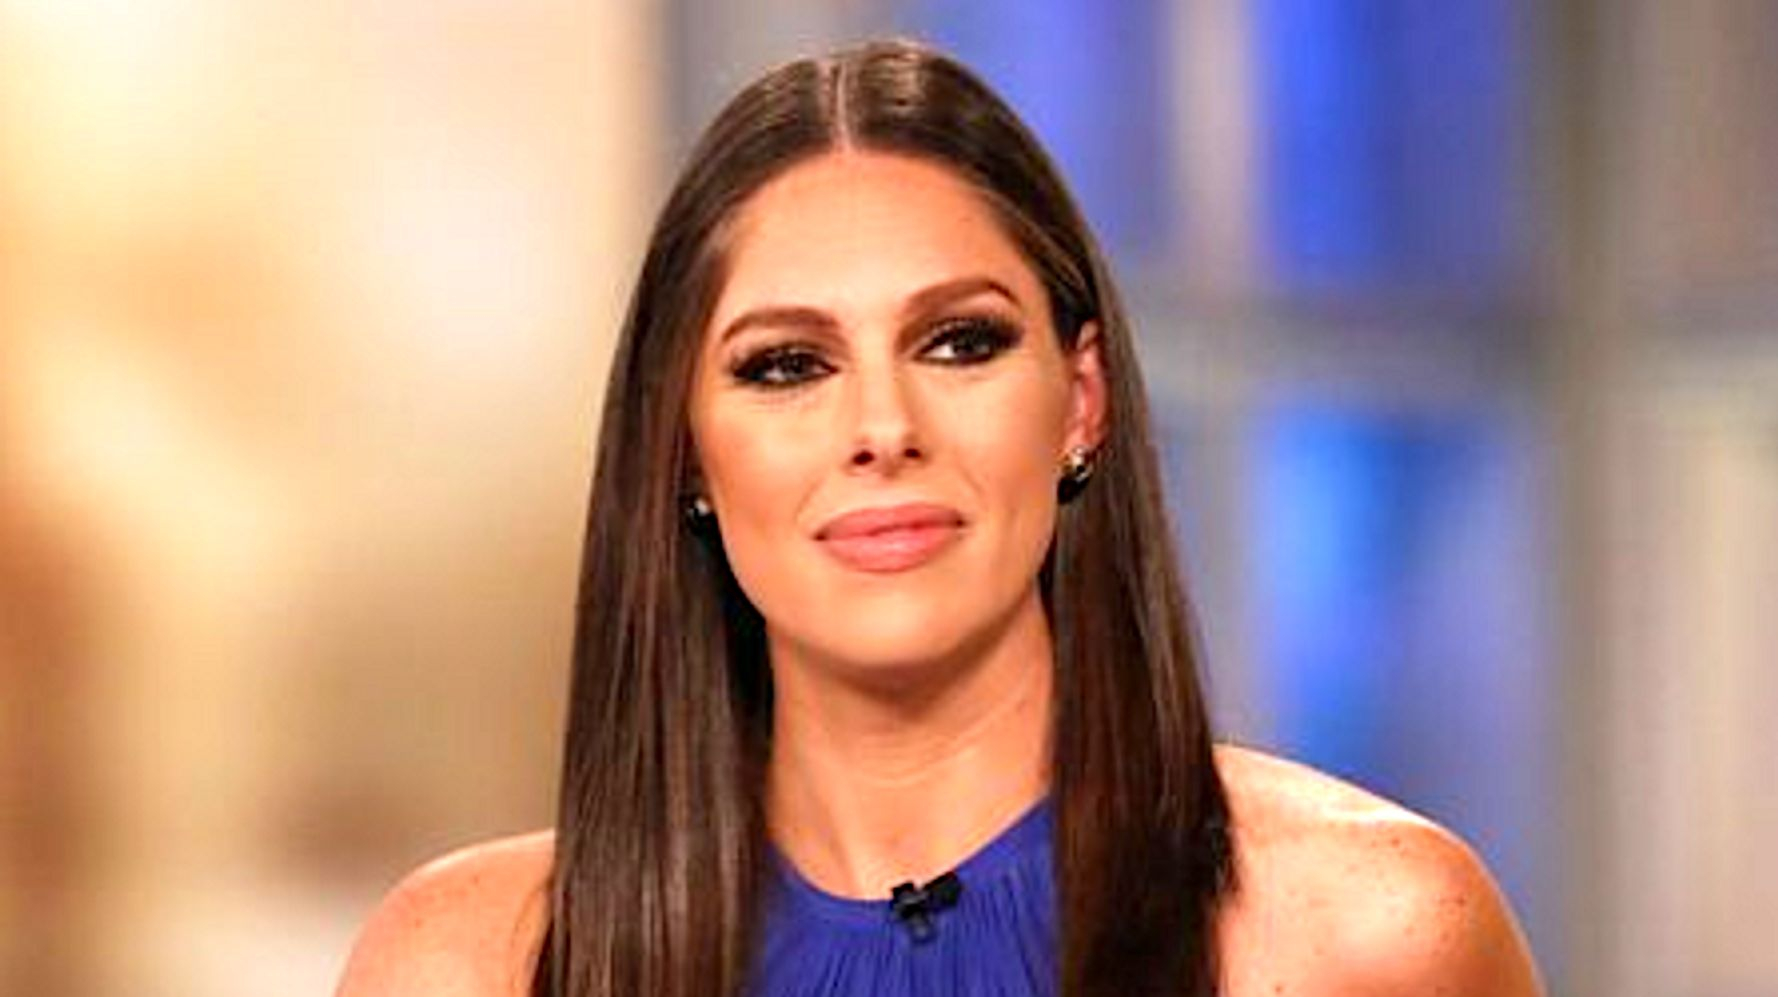 Westlake Legal Group 5e1c9d2921000033001f6caf Abby Huntsman Leaving 'The View' To Help Family Member